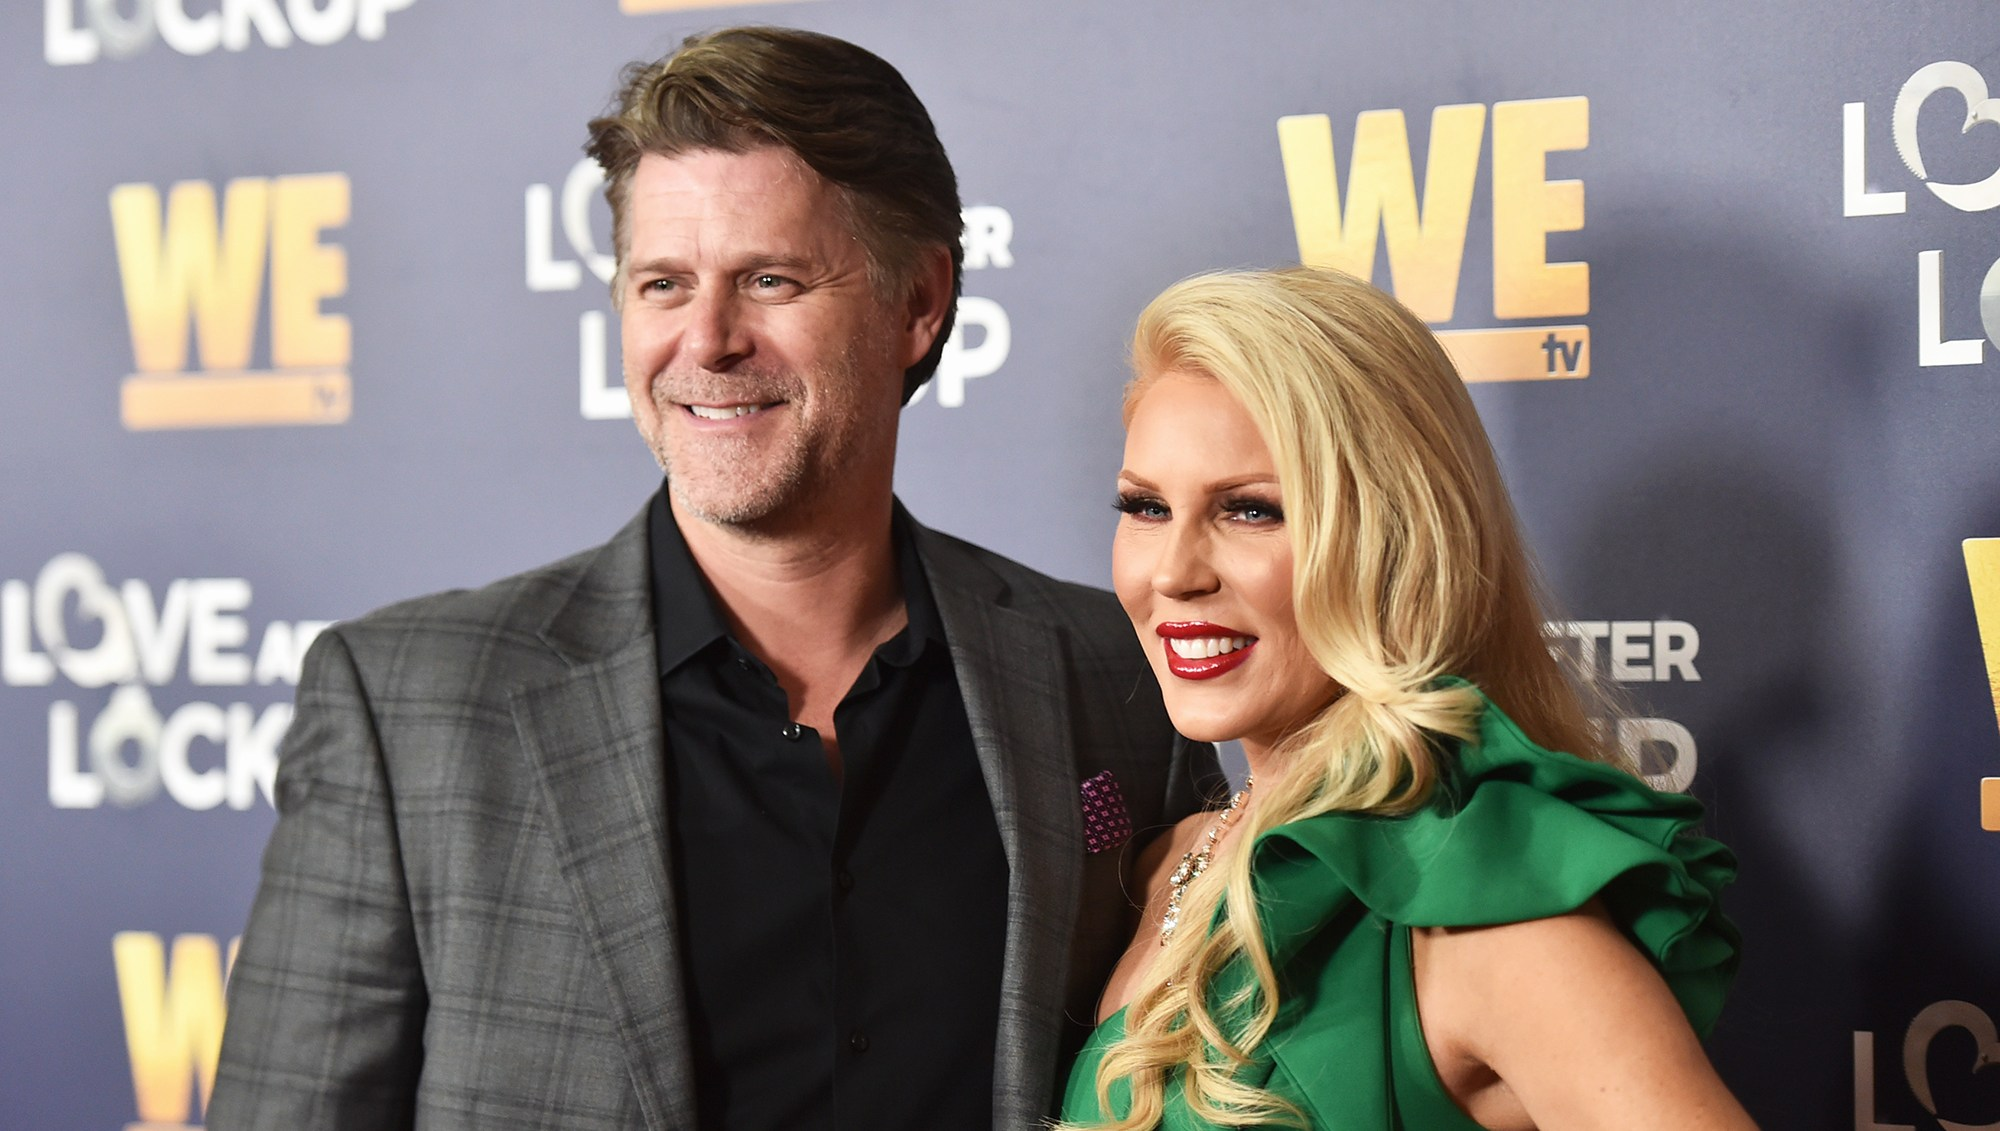 Pregnant at Last! Gretchen Rossi and Slade Are Expecting Their First Child